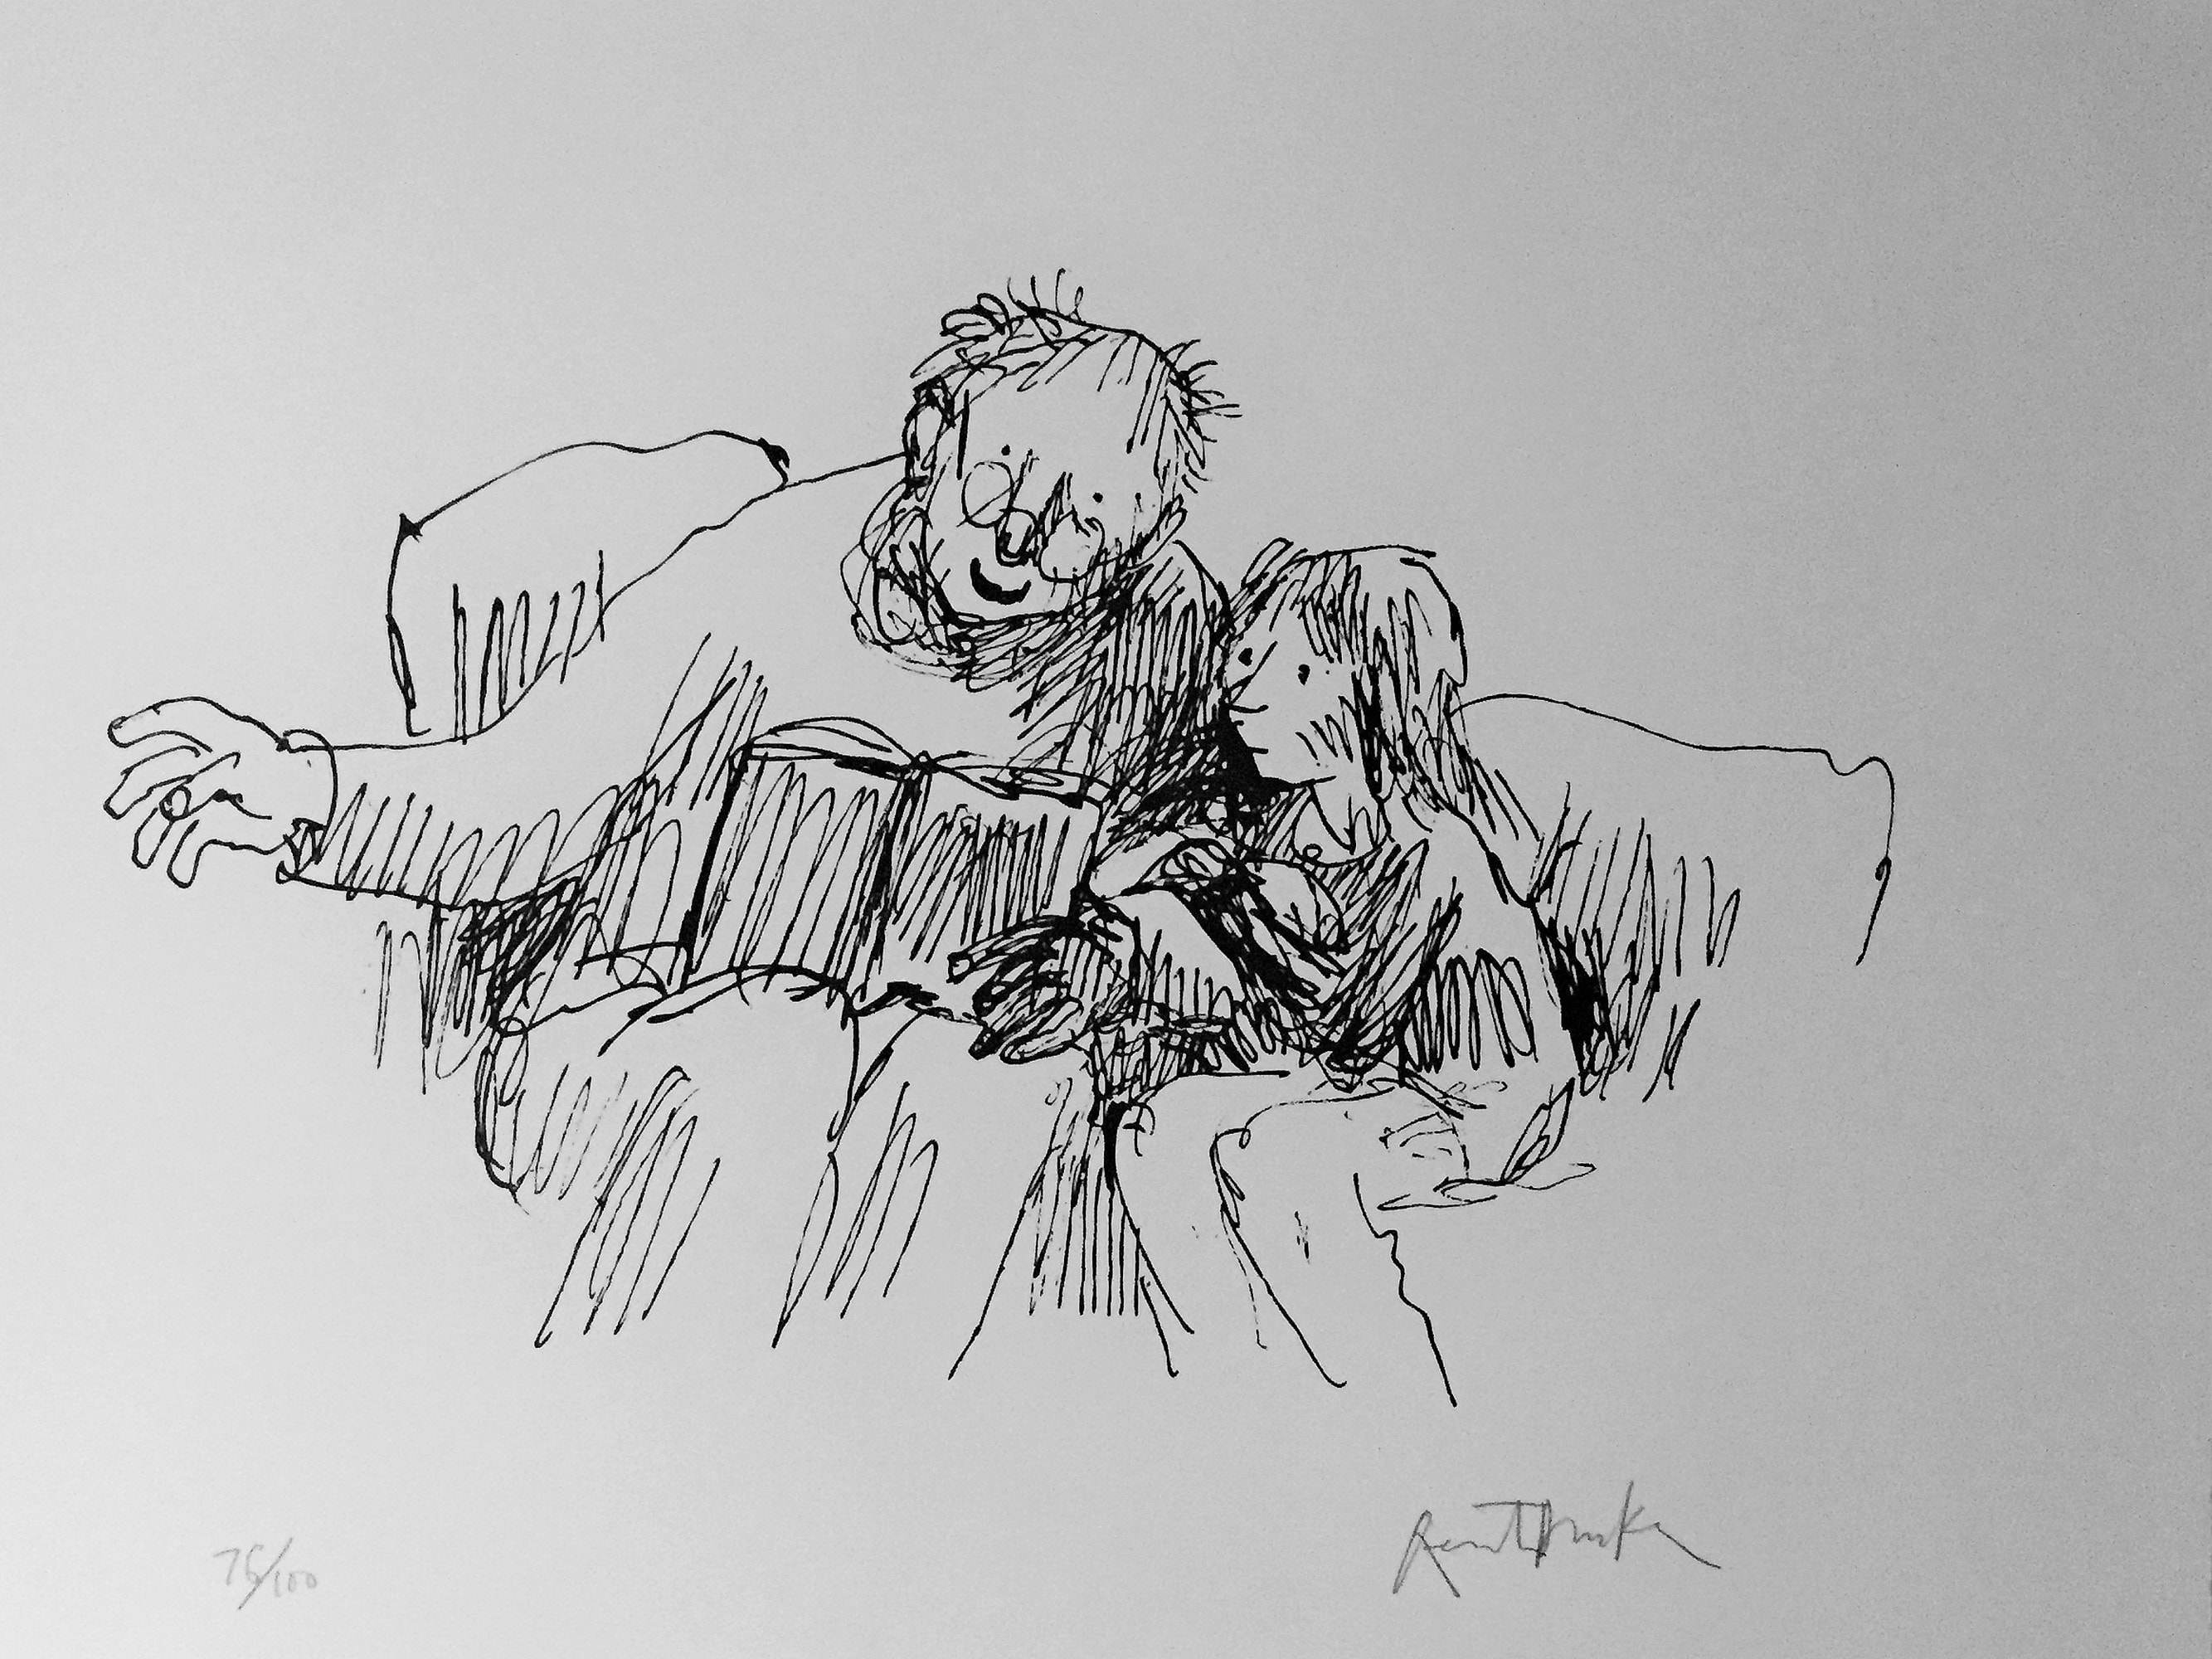 """The Last Chapter"" by Quentin Blake. Featured in Roald Dahl's ""Boy"" in the Examined Life Library."